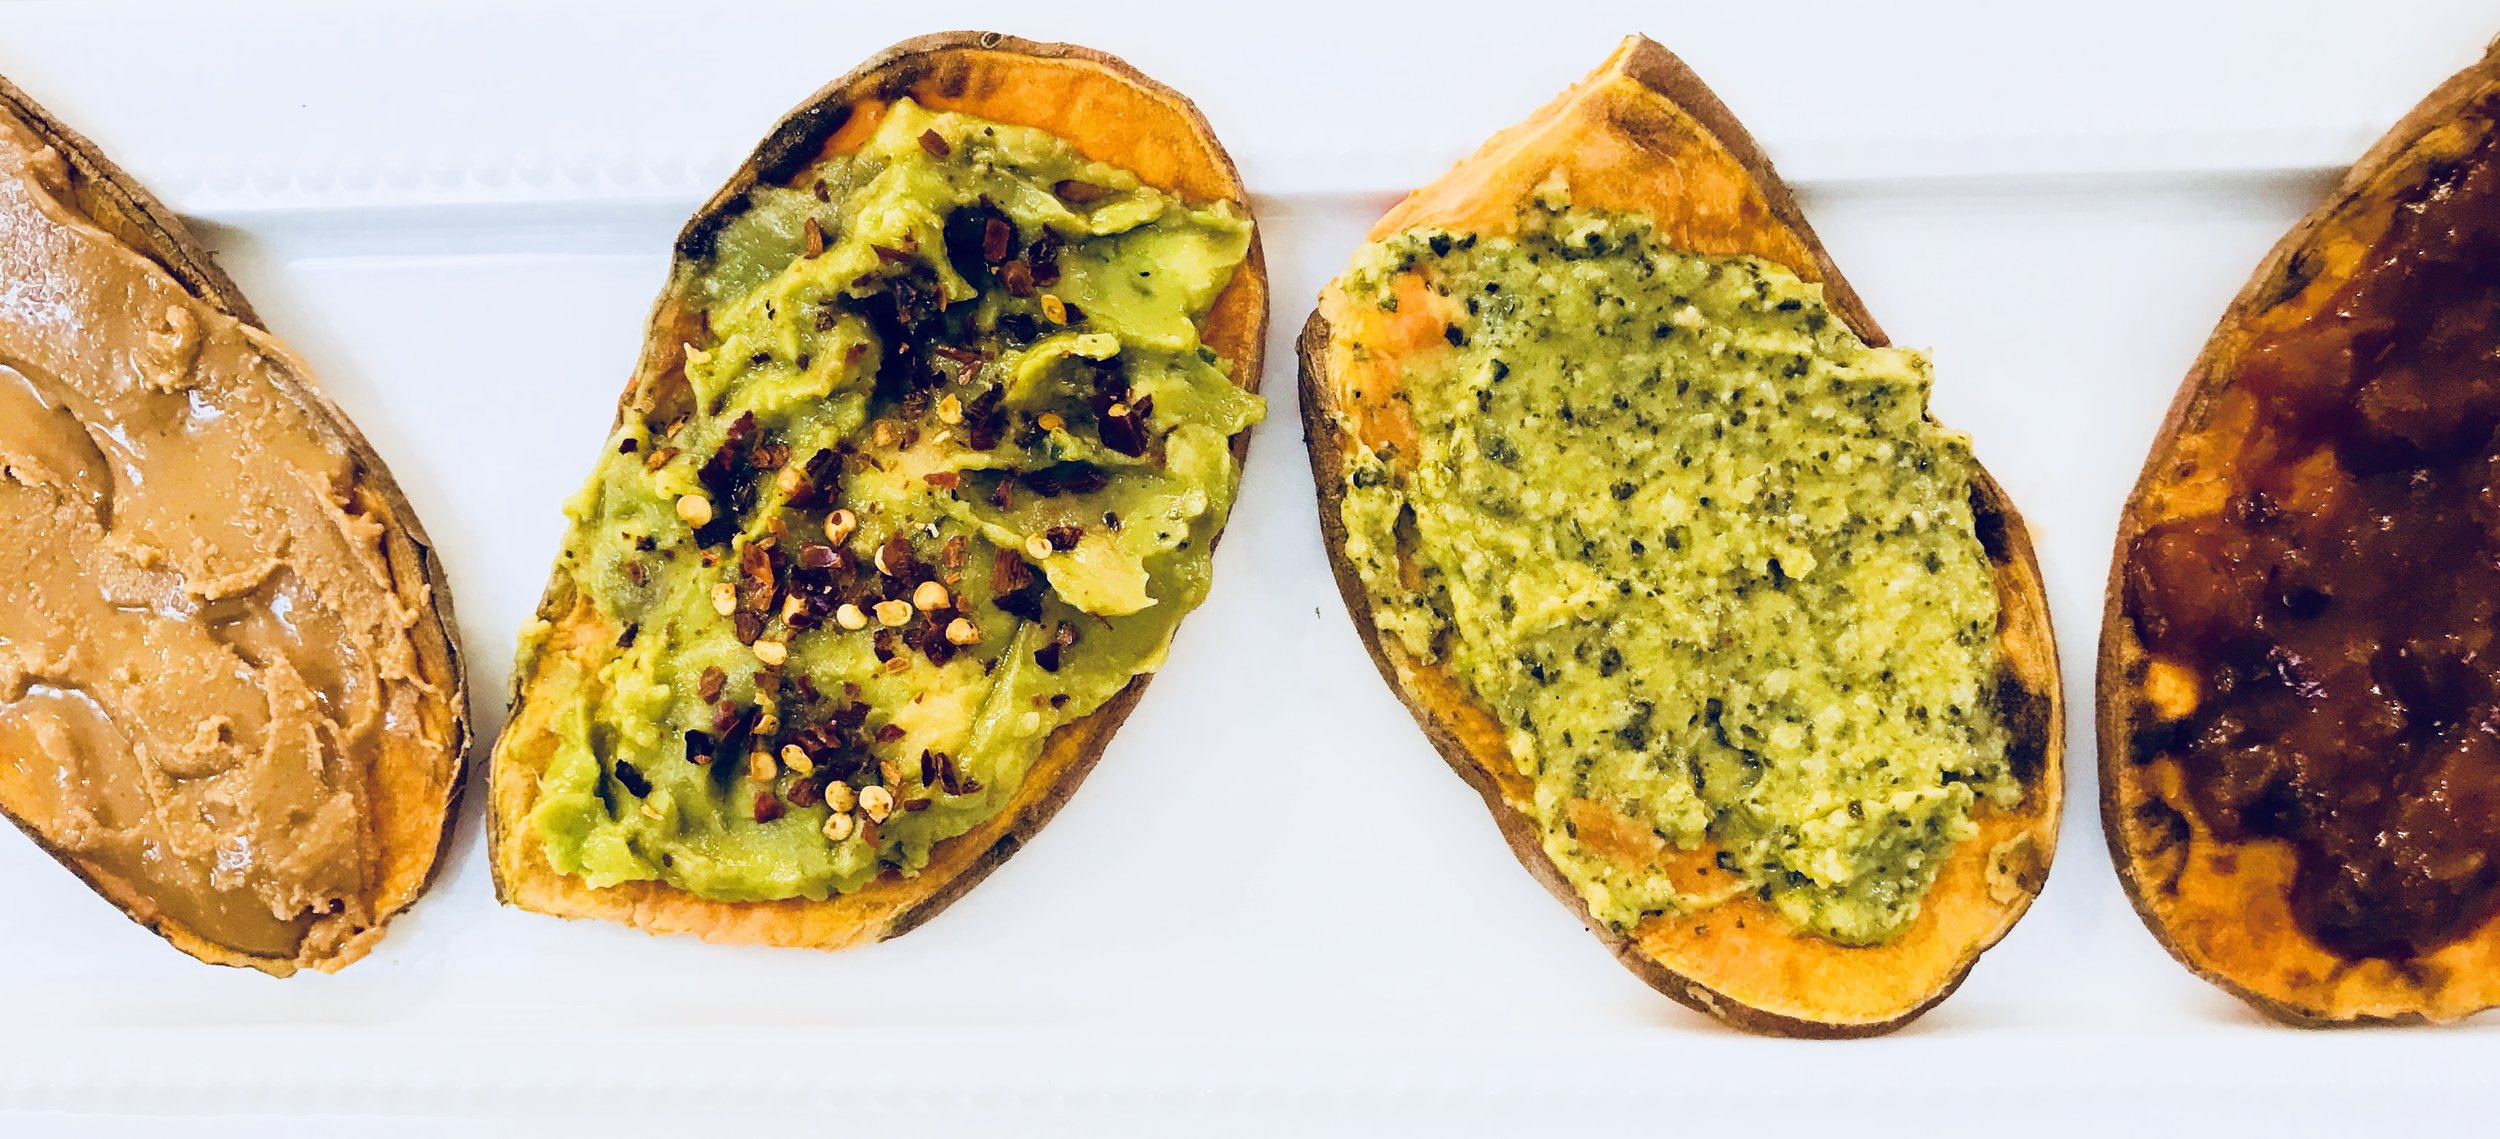 From left to right: Santa Cruz Organics' creamy peanut butter, avocado with crushed red pepper flakes,; Hope Food's kale & pesto hummus; black bean salsa.